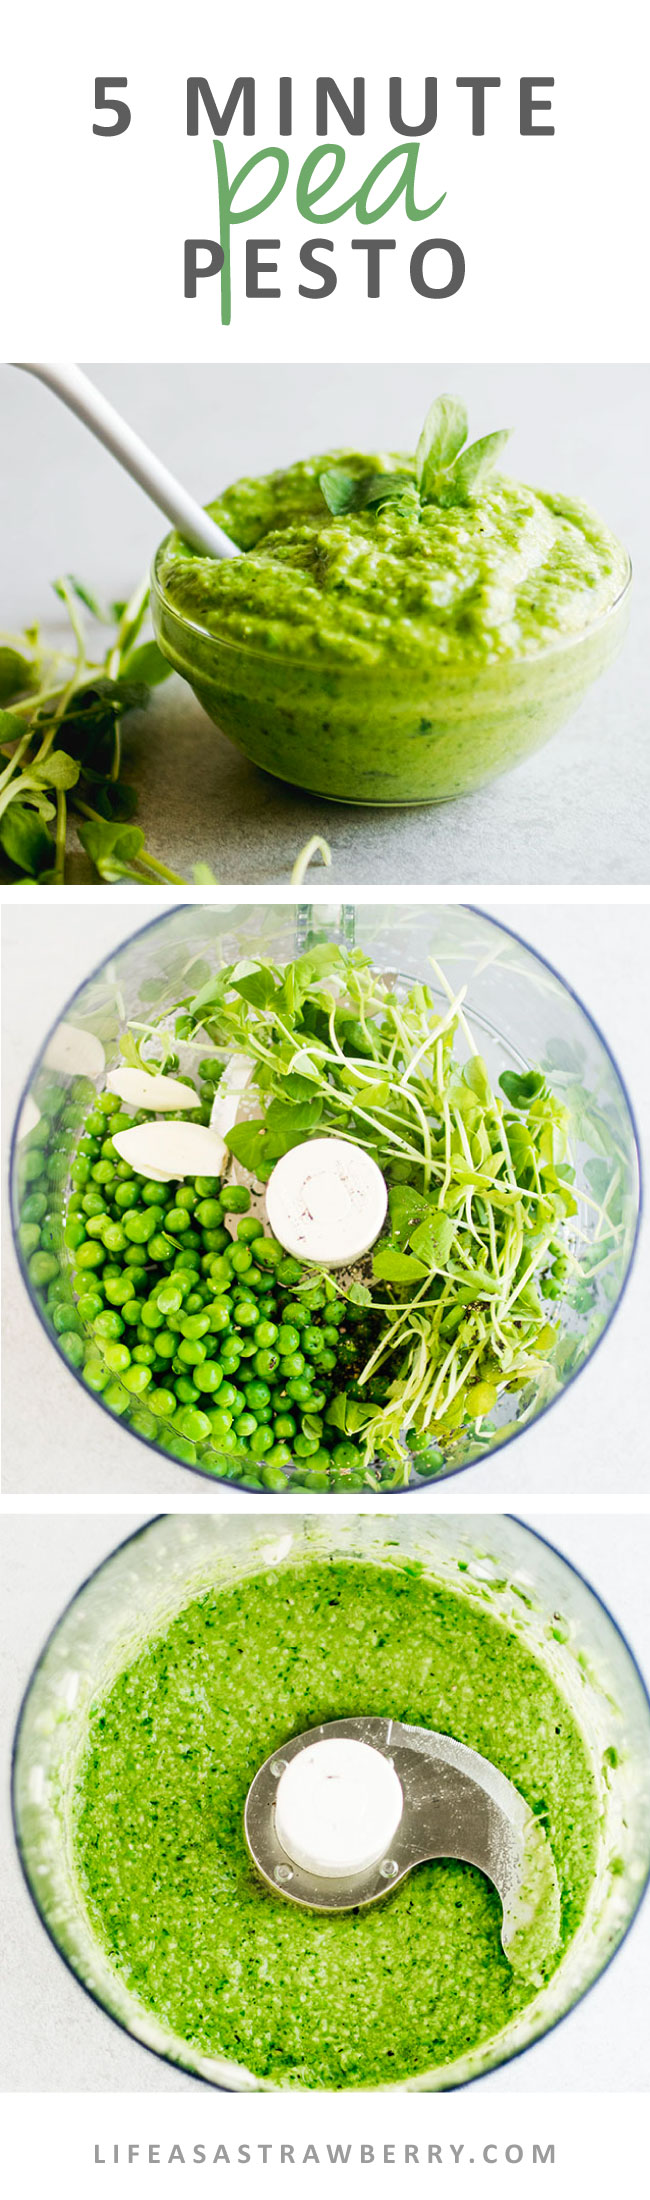 5 Minute Pea Pesto - This traditional pesto recipe gets a springtime twist with fresh peas and pea shoots! An easy, creamy homemade pesto sauce perfect for topping dishes like pasta, chicken, fish, and more. Ready in just five minutes with your food processor without pine nuts! Vegan, Vegetarian.